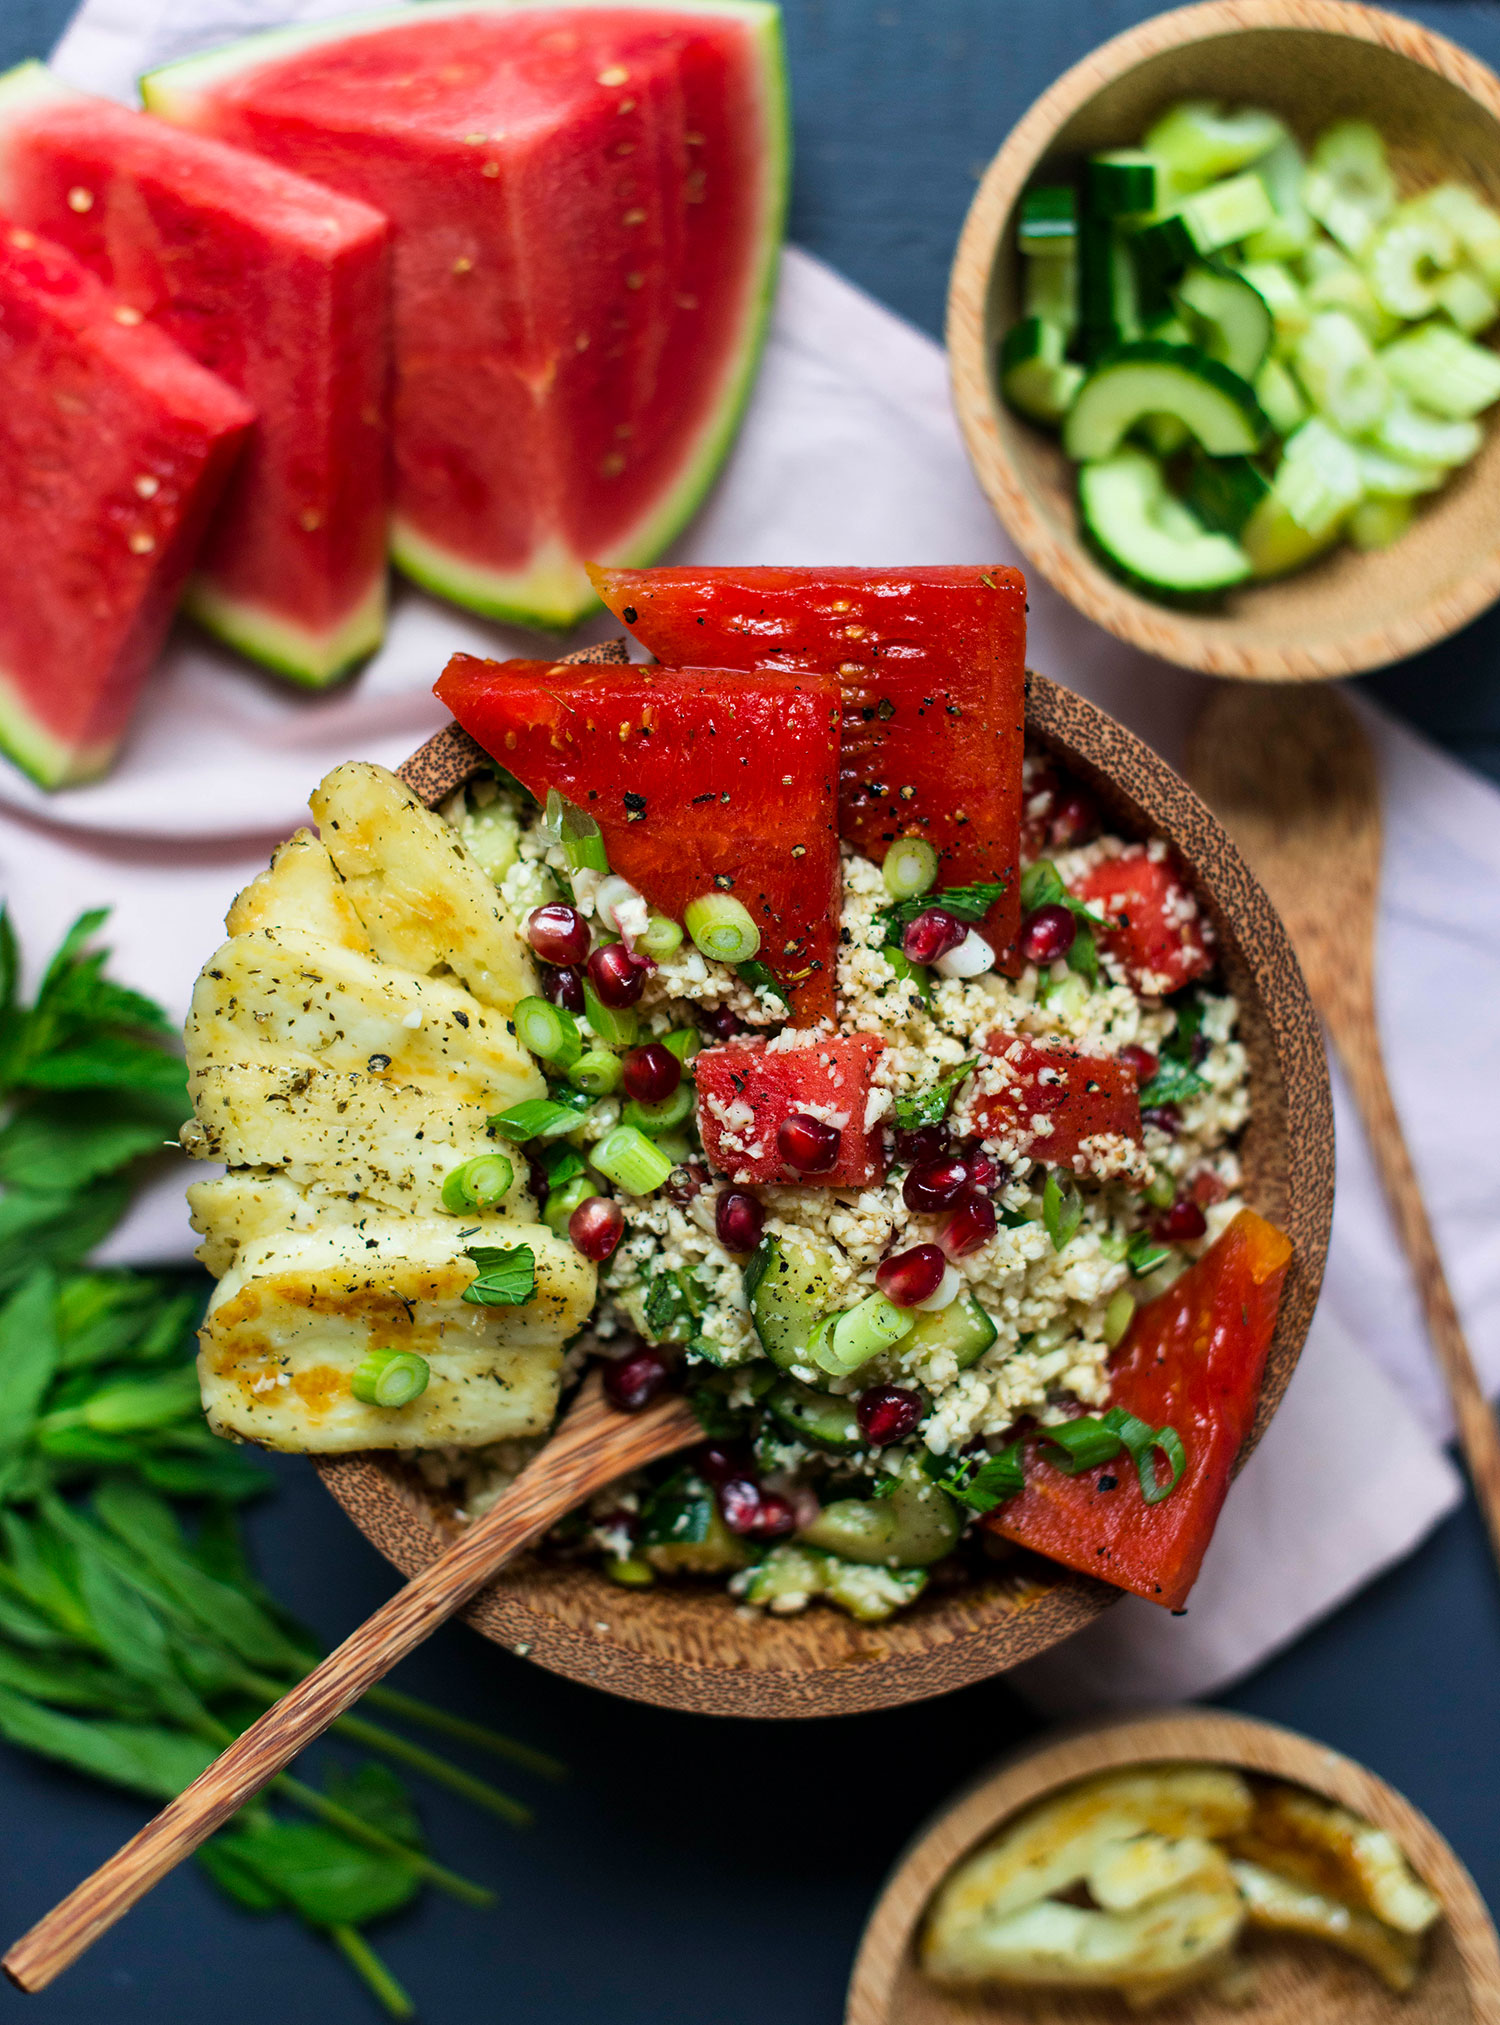 Cauliflower-tabouleh-halloumi-watermelon-2